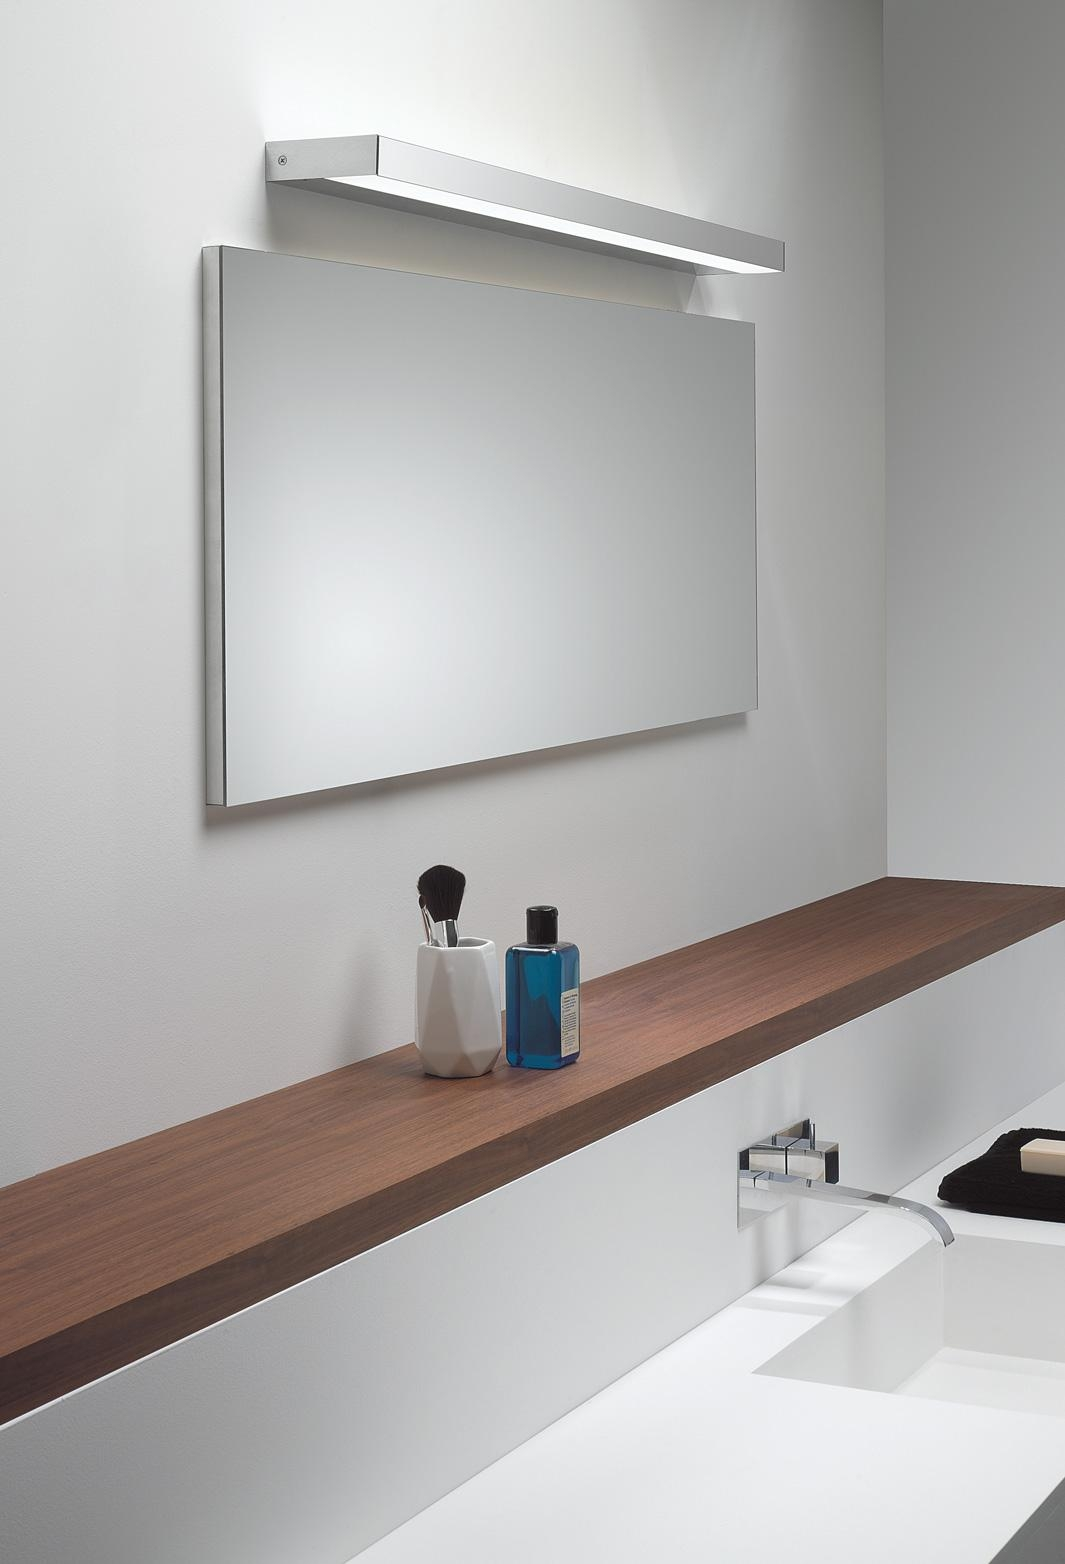 Cool Led Light Wall Mounted Makeup Mirrorglimmernameeks Inside Bathroom Wall Mirrors With Lights (Photo 15 of 20)